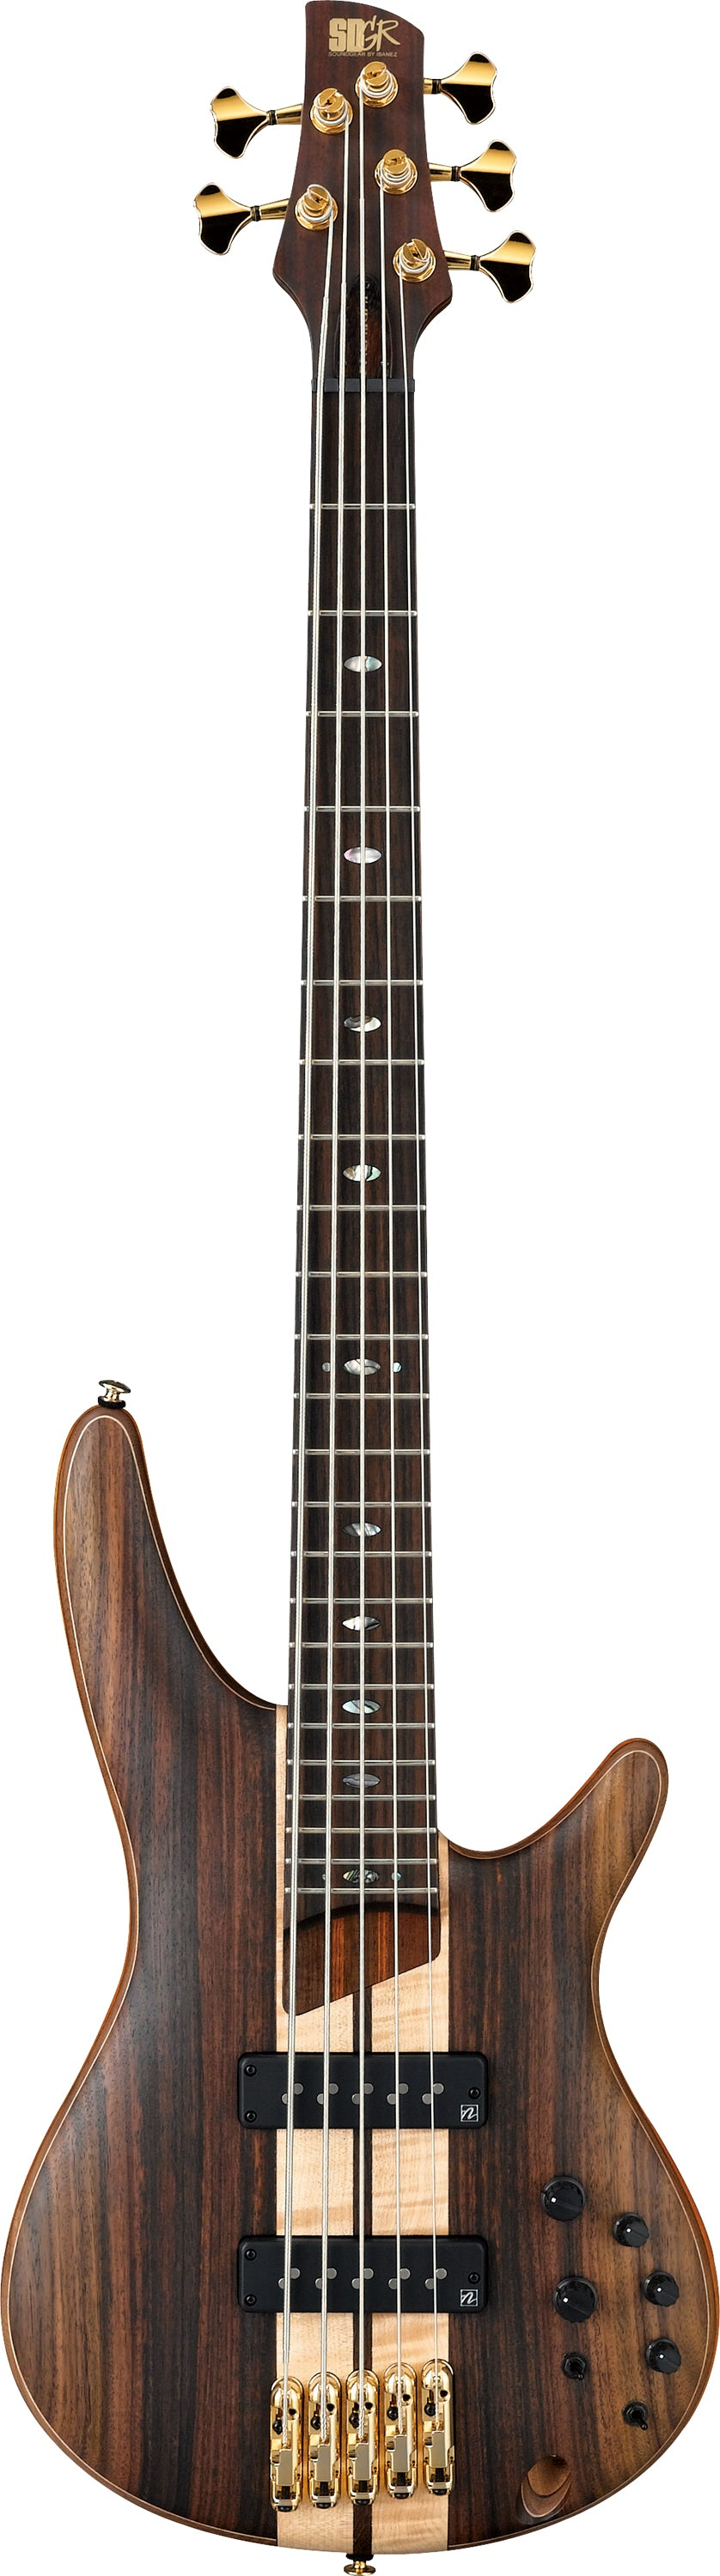 Ibanez SR1805E Premium Electric Bass Guitar - Natural Flat